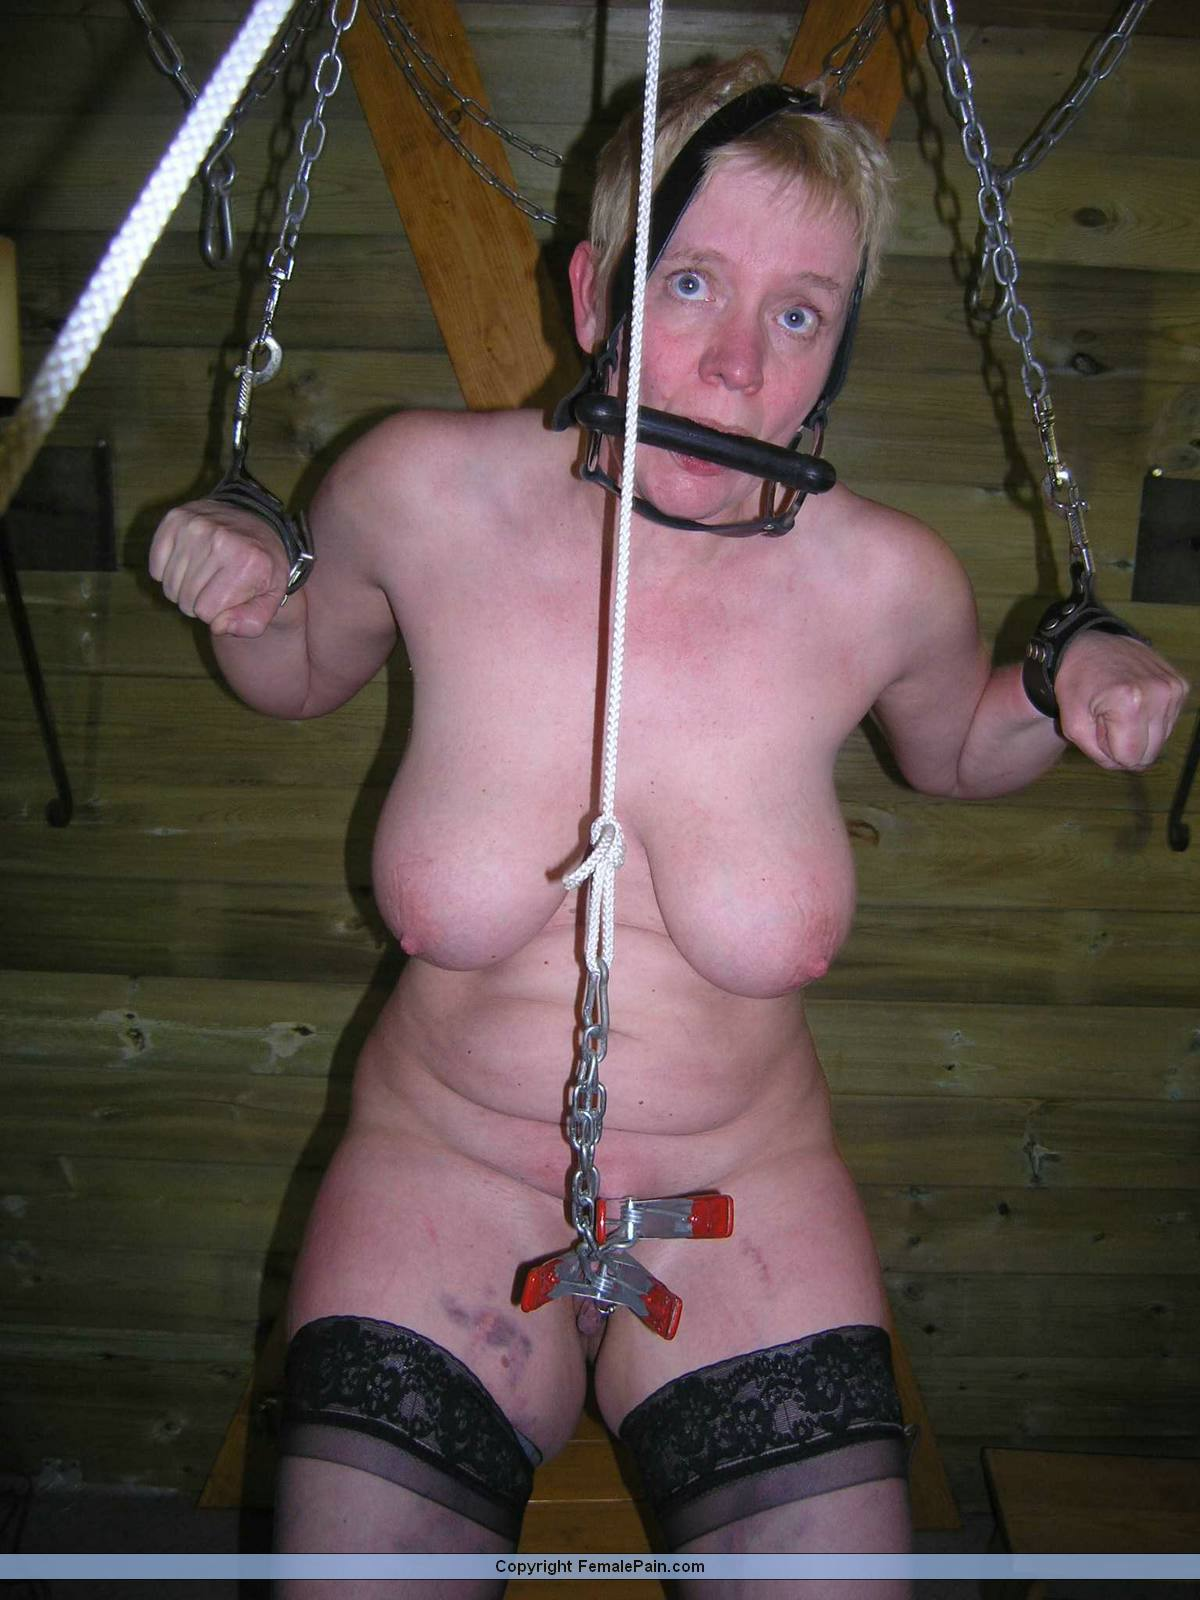 water sex and Bondage